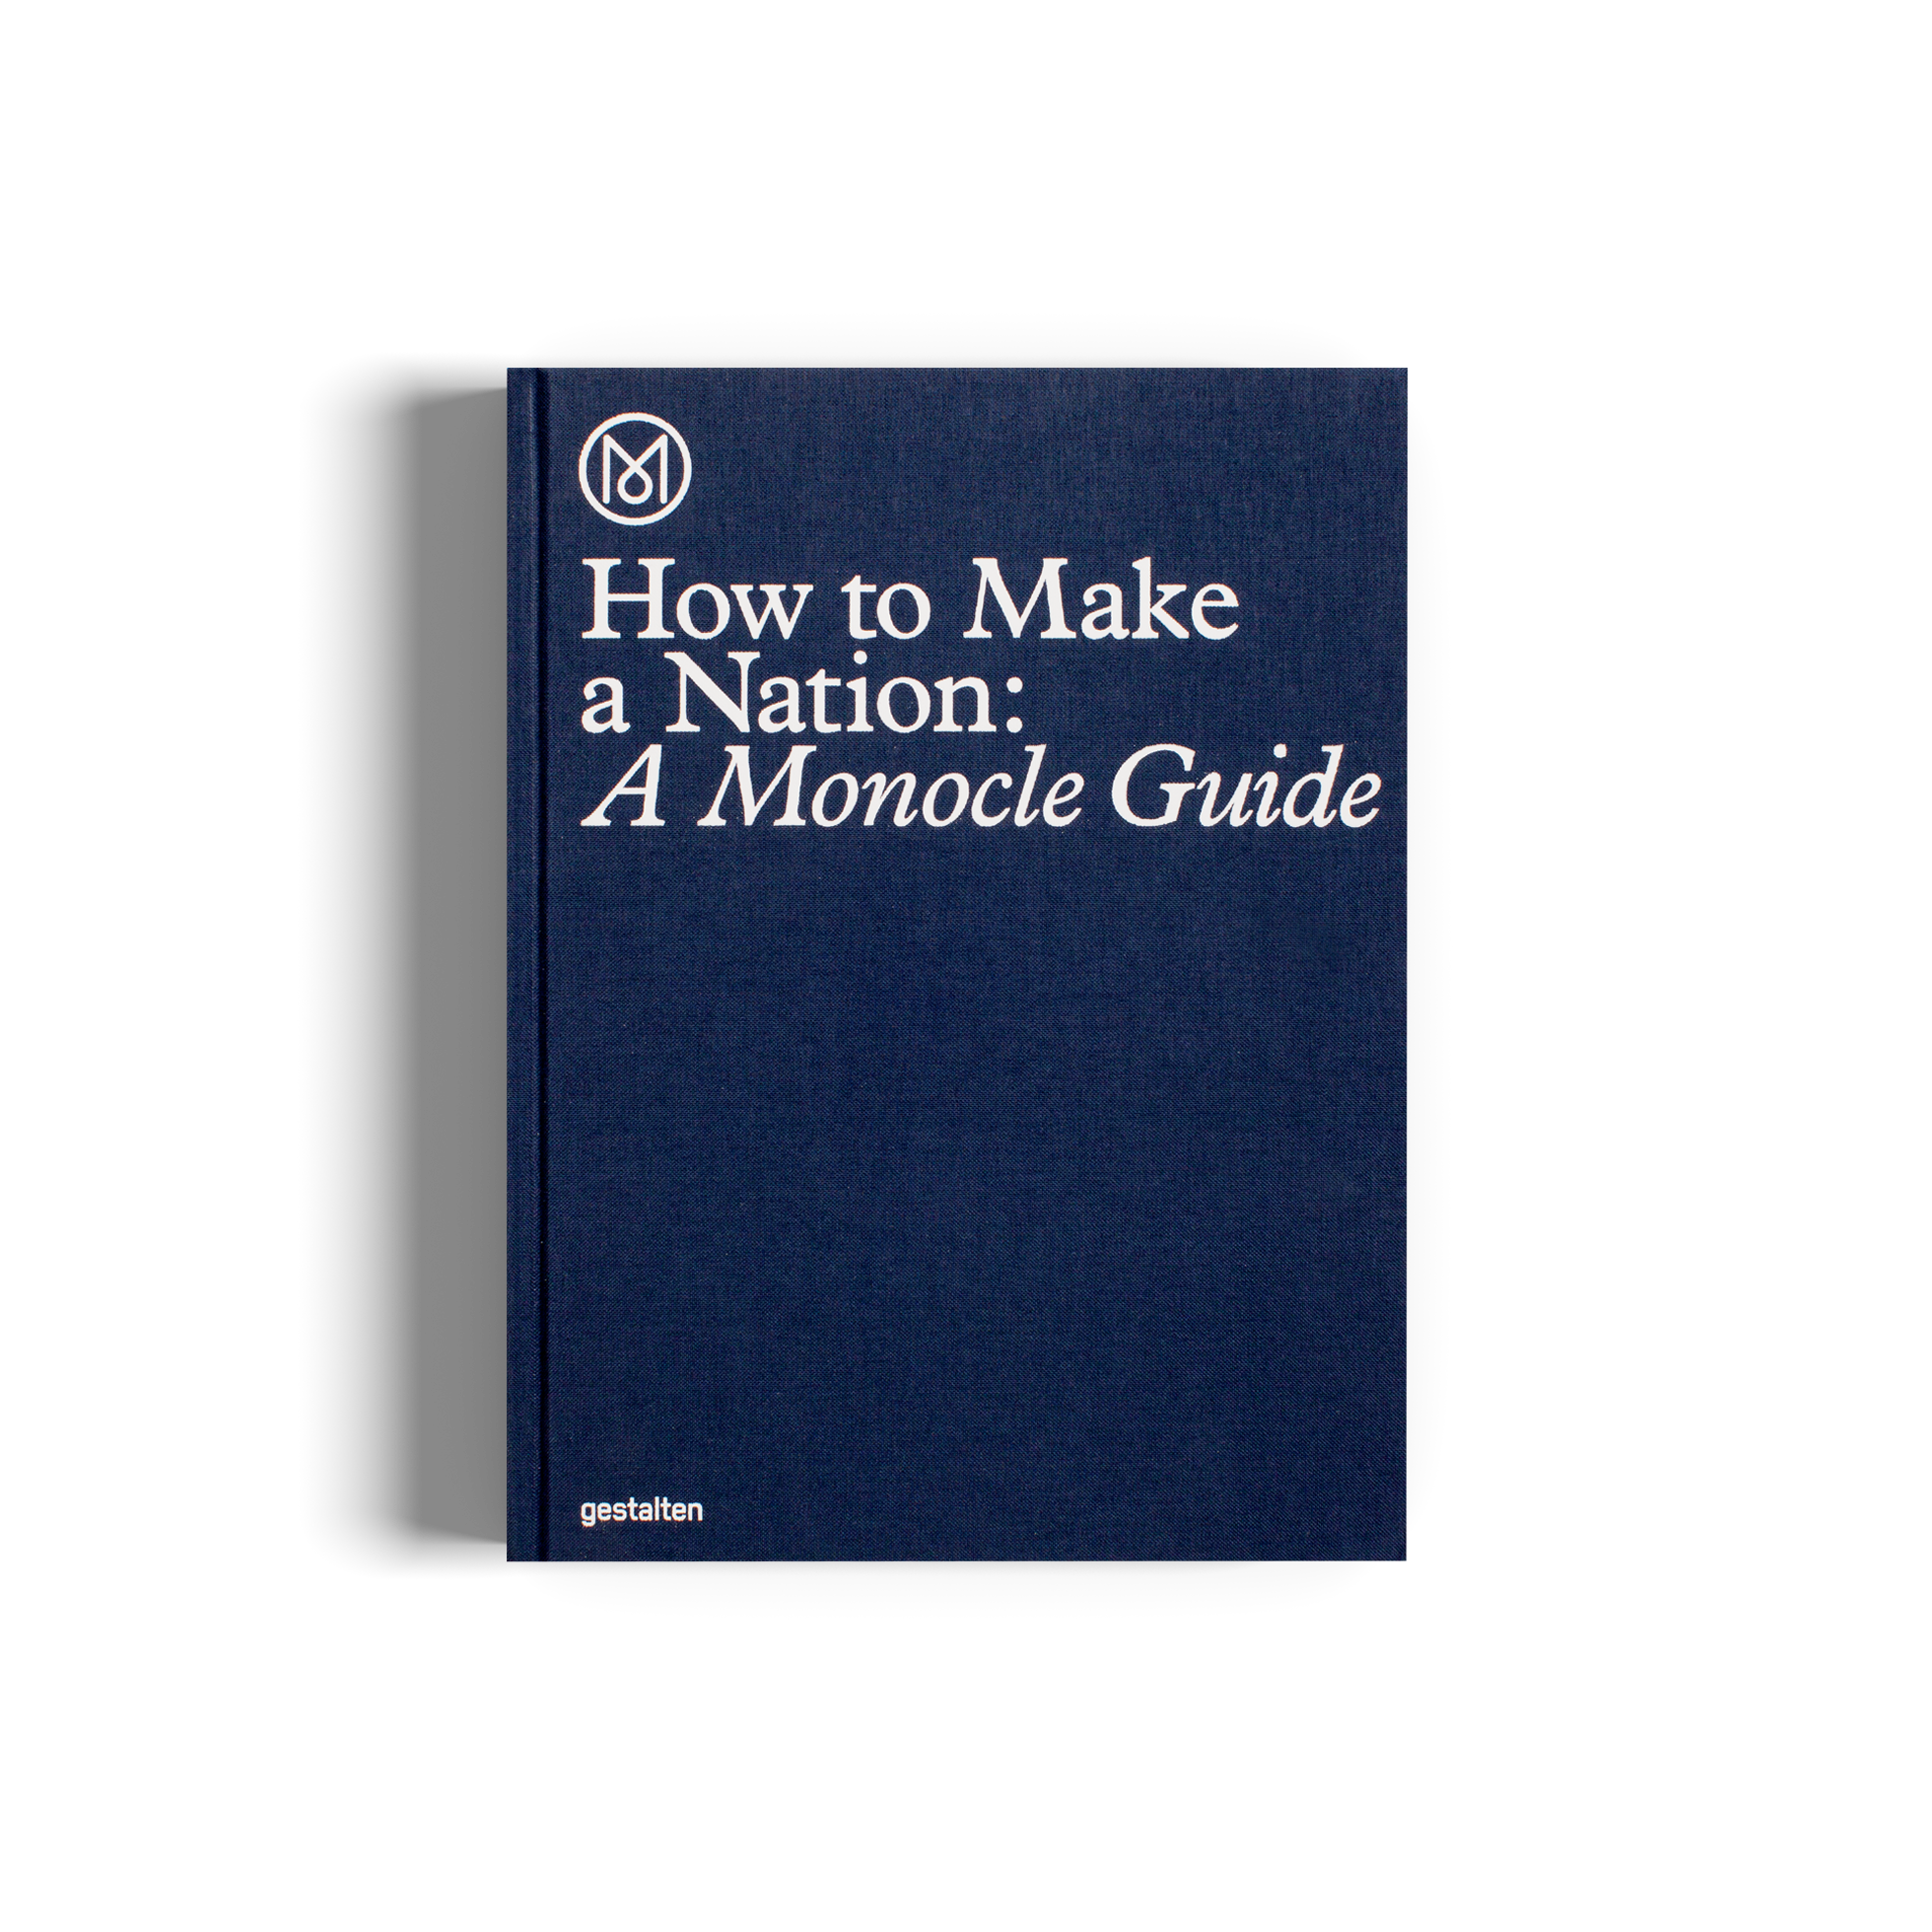 How to Run a NationA Monocle Guide